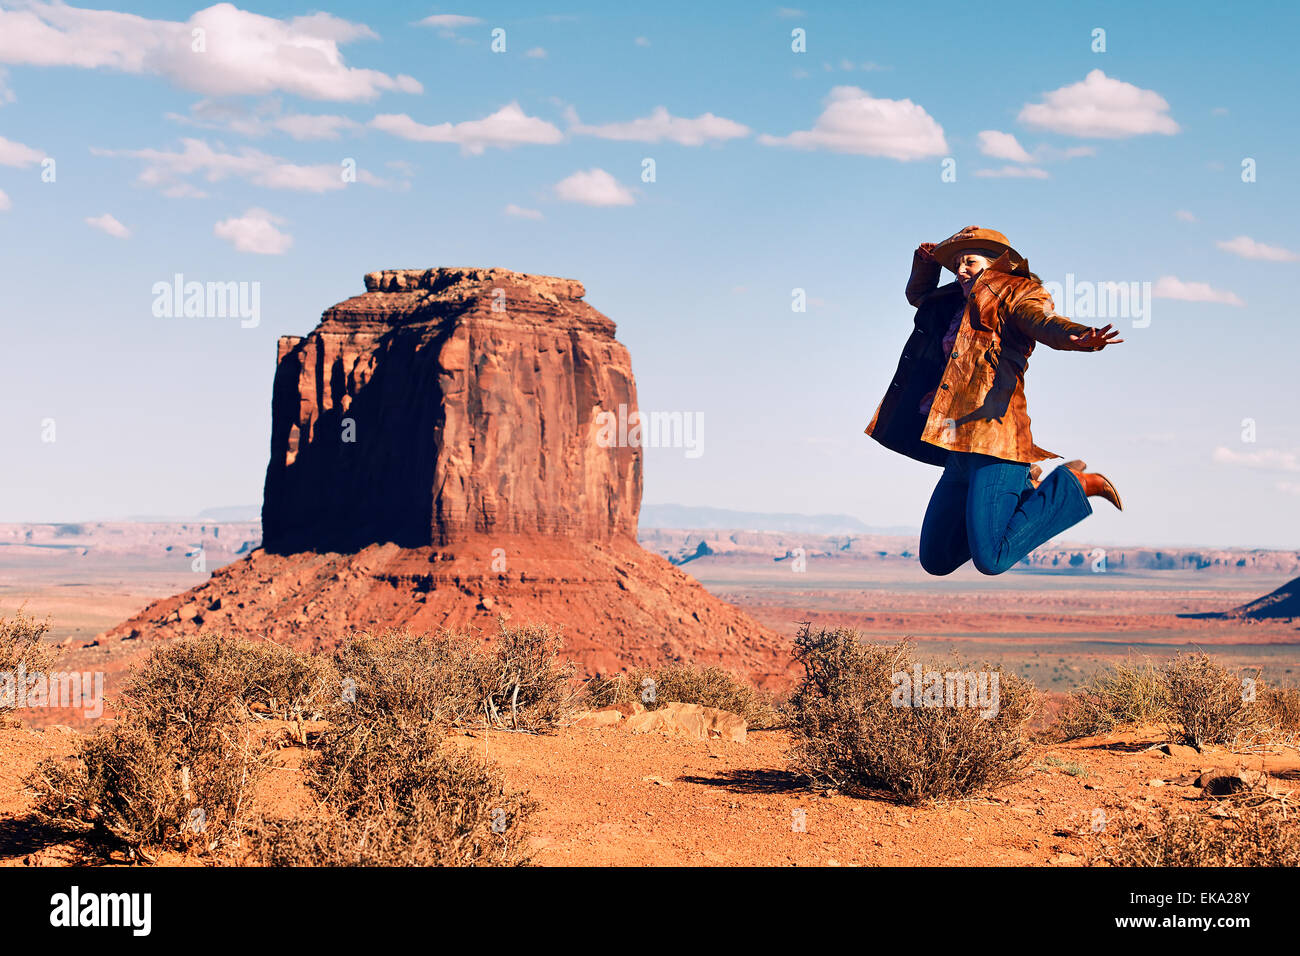 jump at Monument Valley - Stock Image